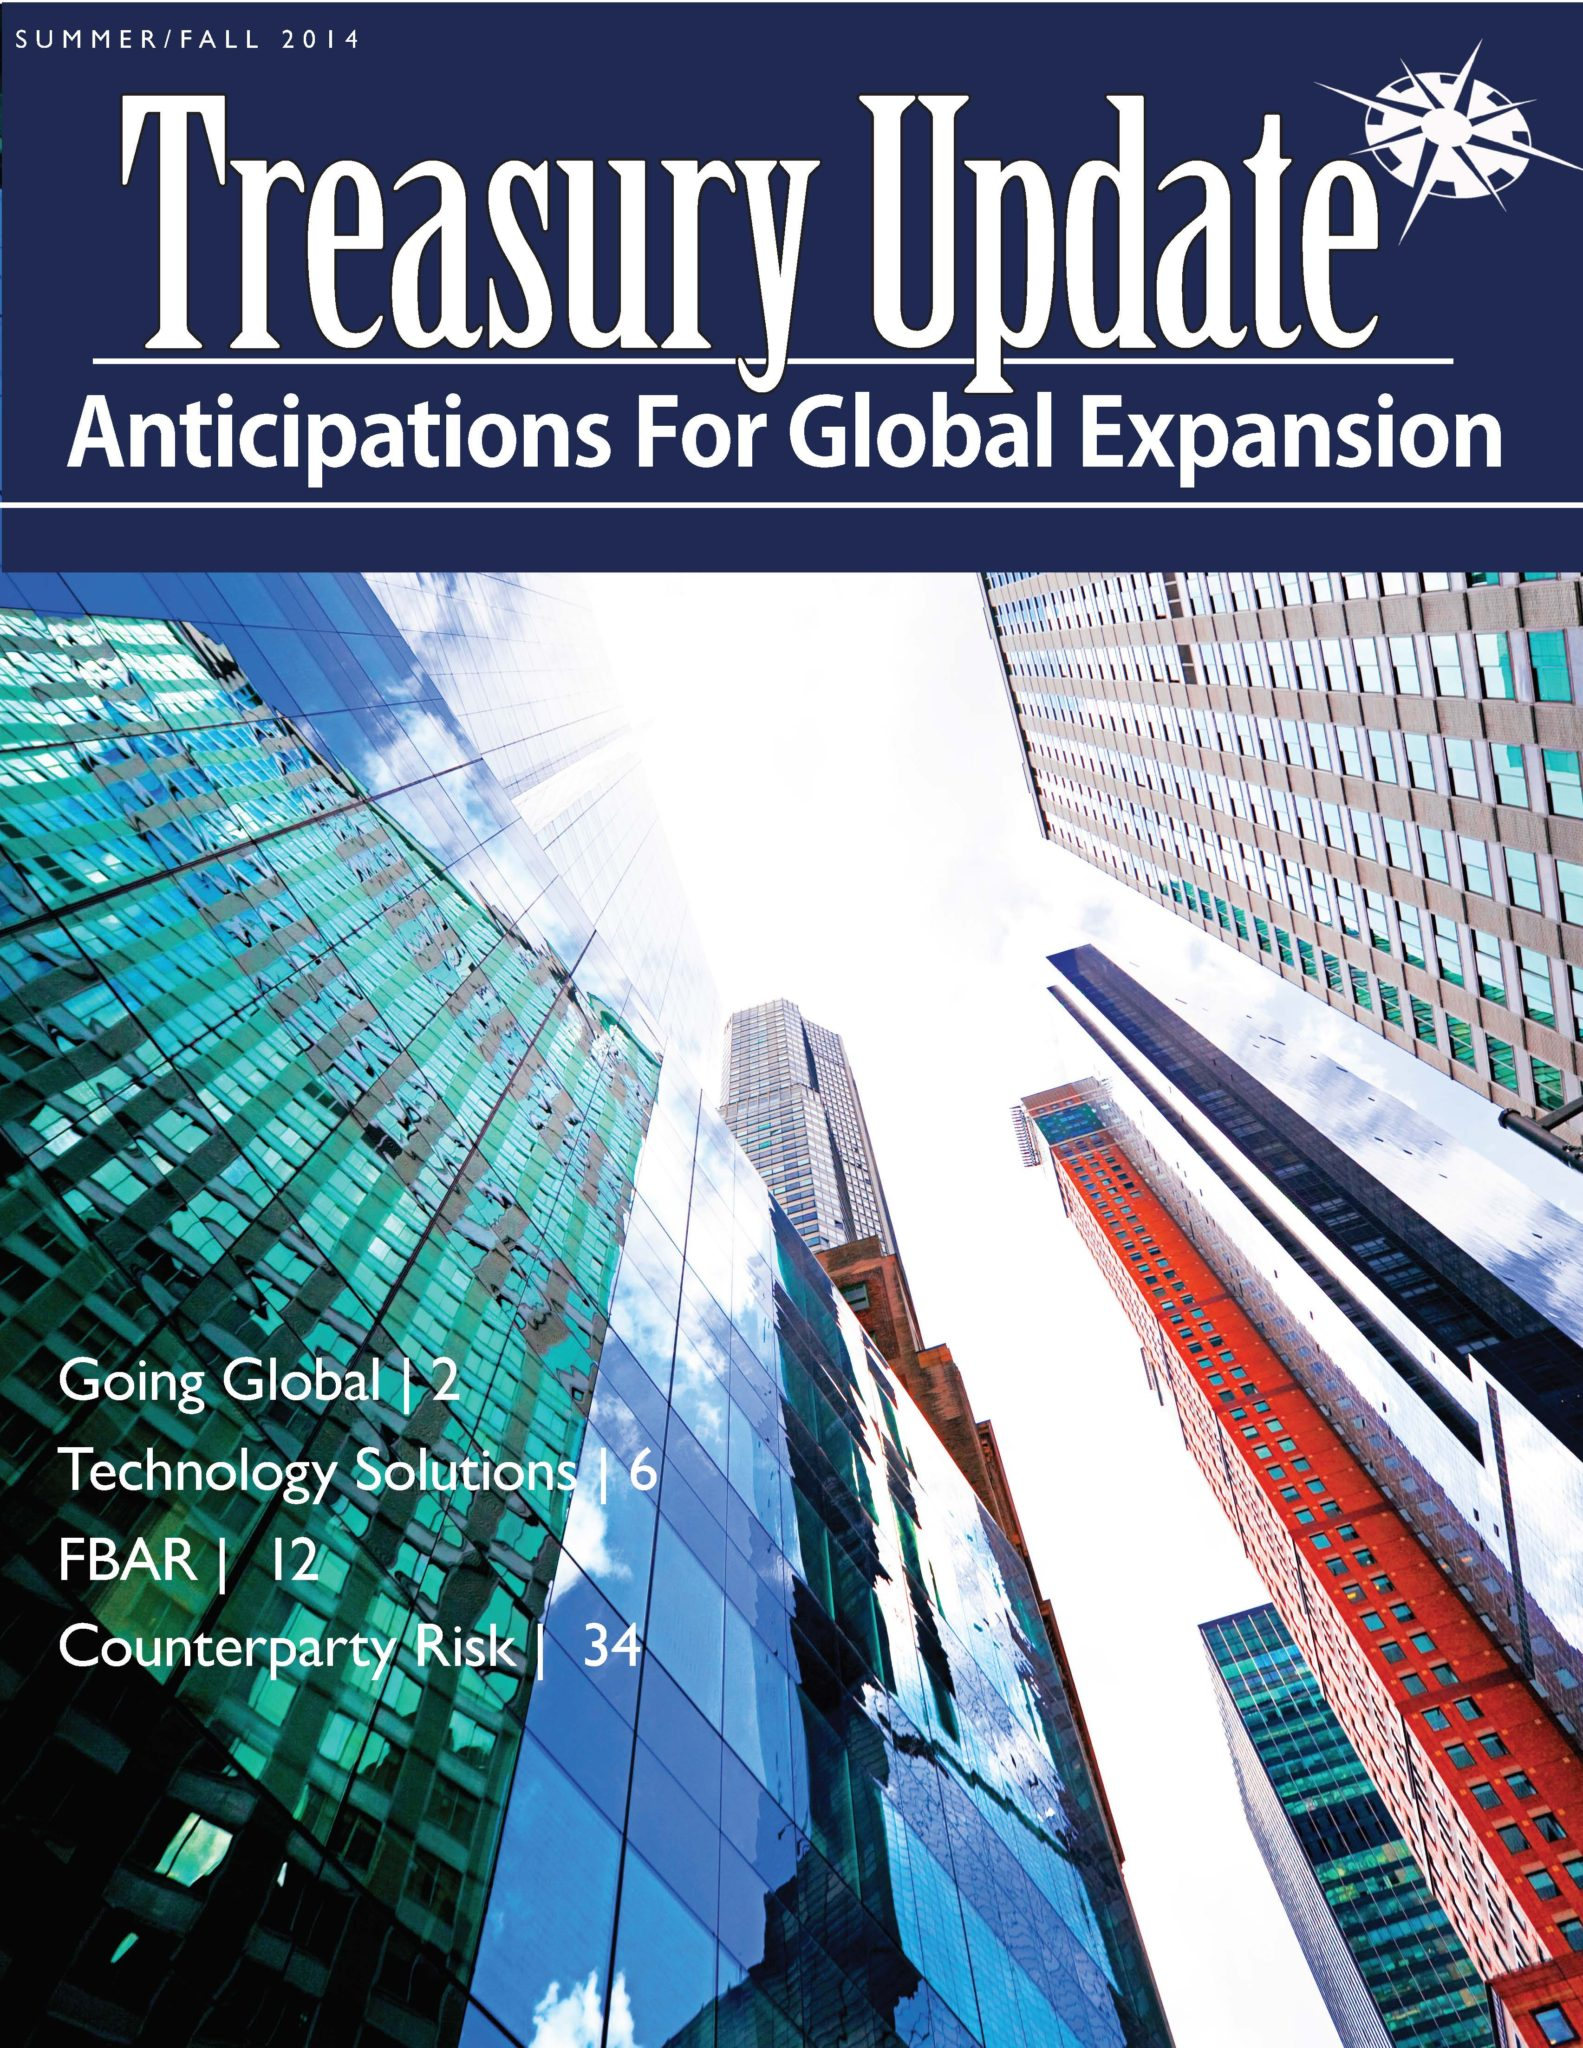 Summer/Fall 2014 Treasury Update Newsletter